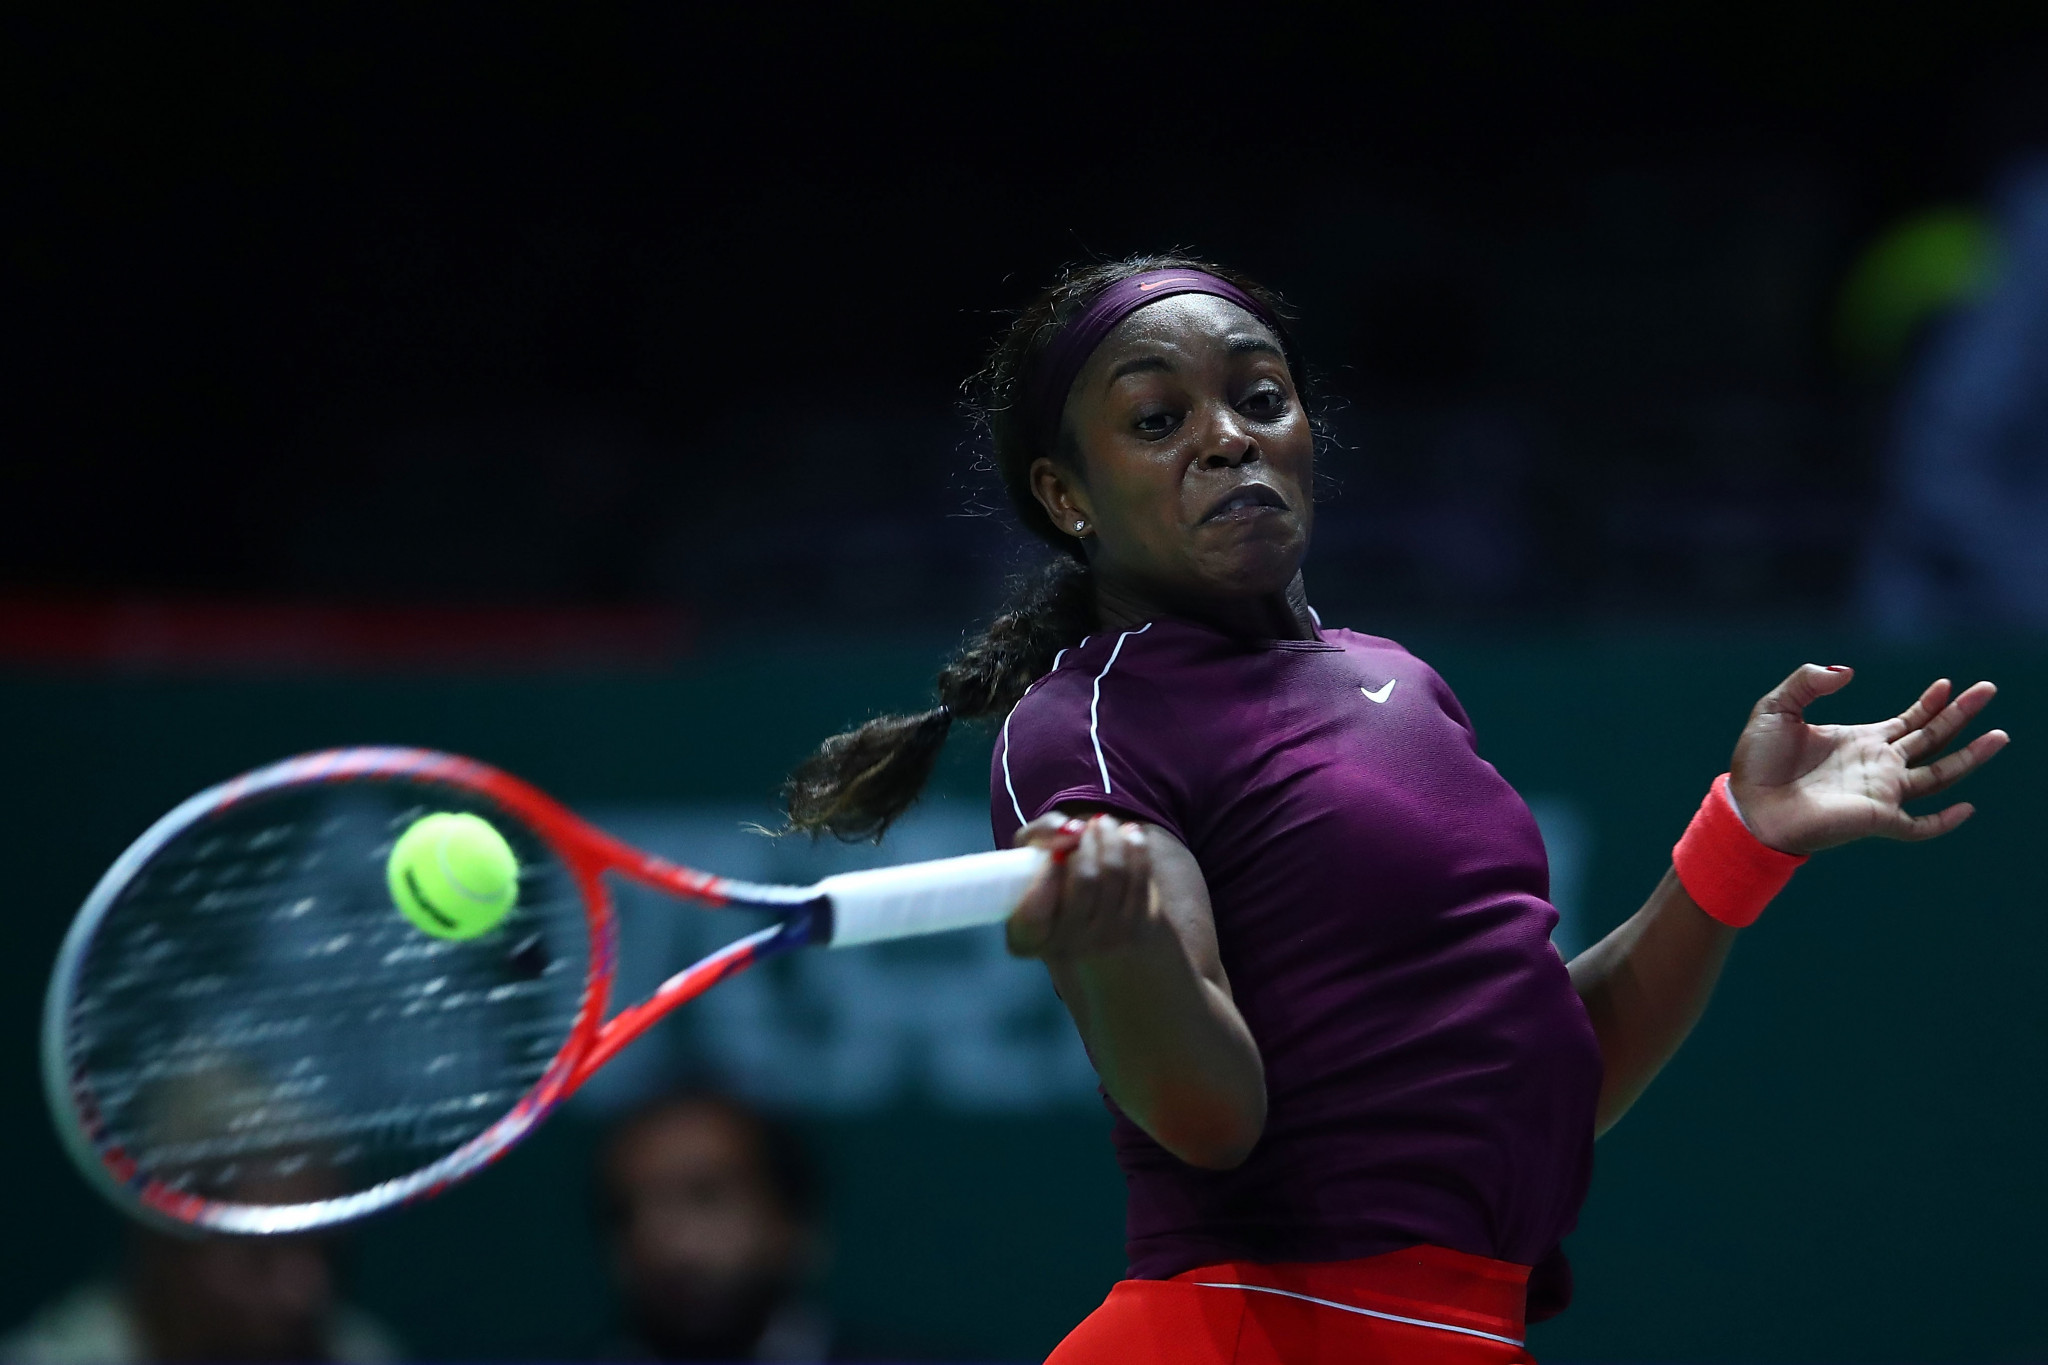 Sloane Stephens of the US beat Kiki Bertens of The Netherlands at the WTA Finals in Singapore ©Getty Images